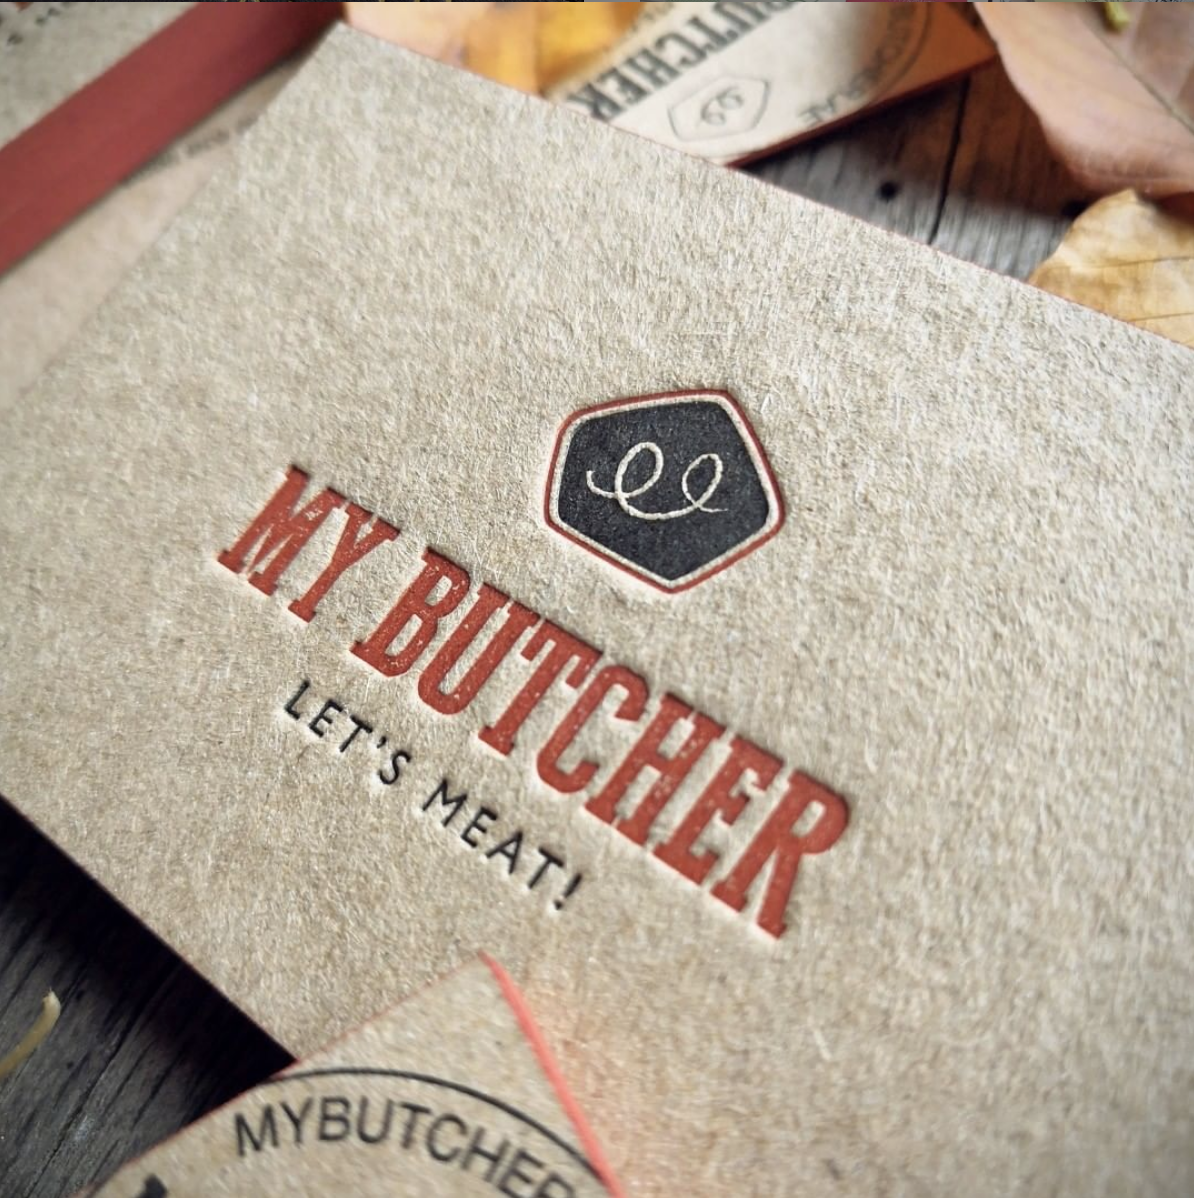 Mybutcher Business cards